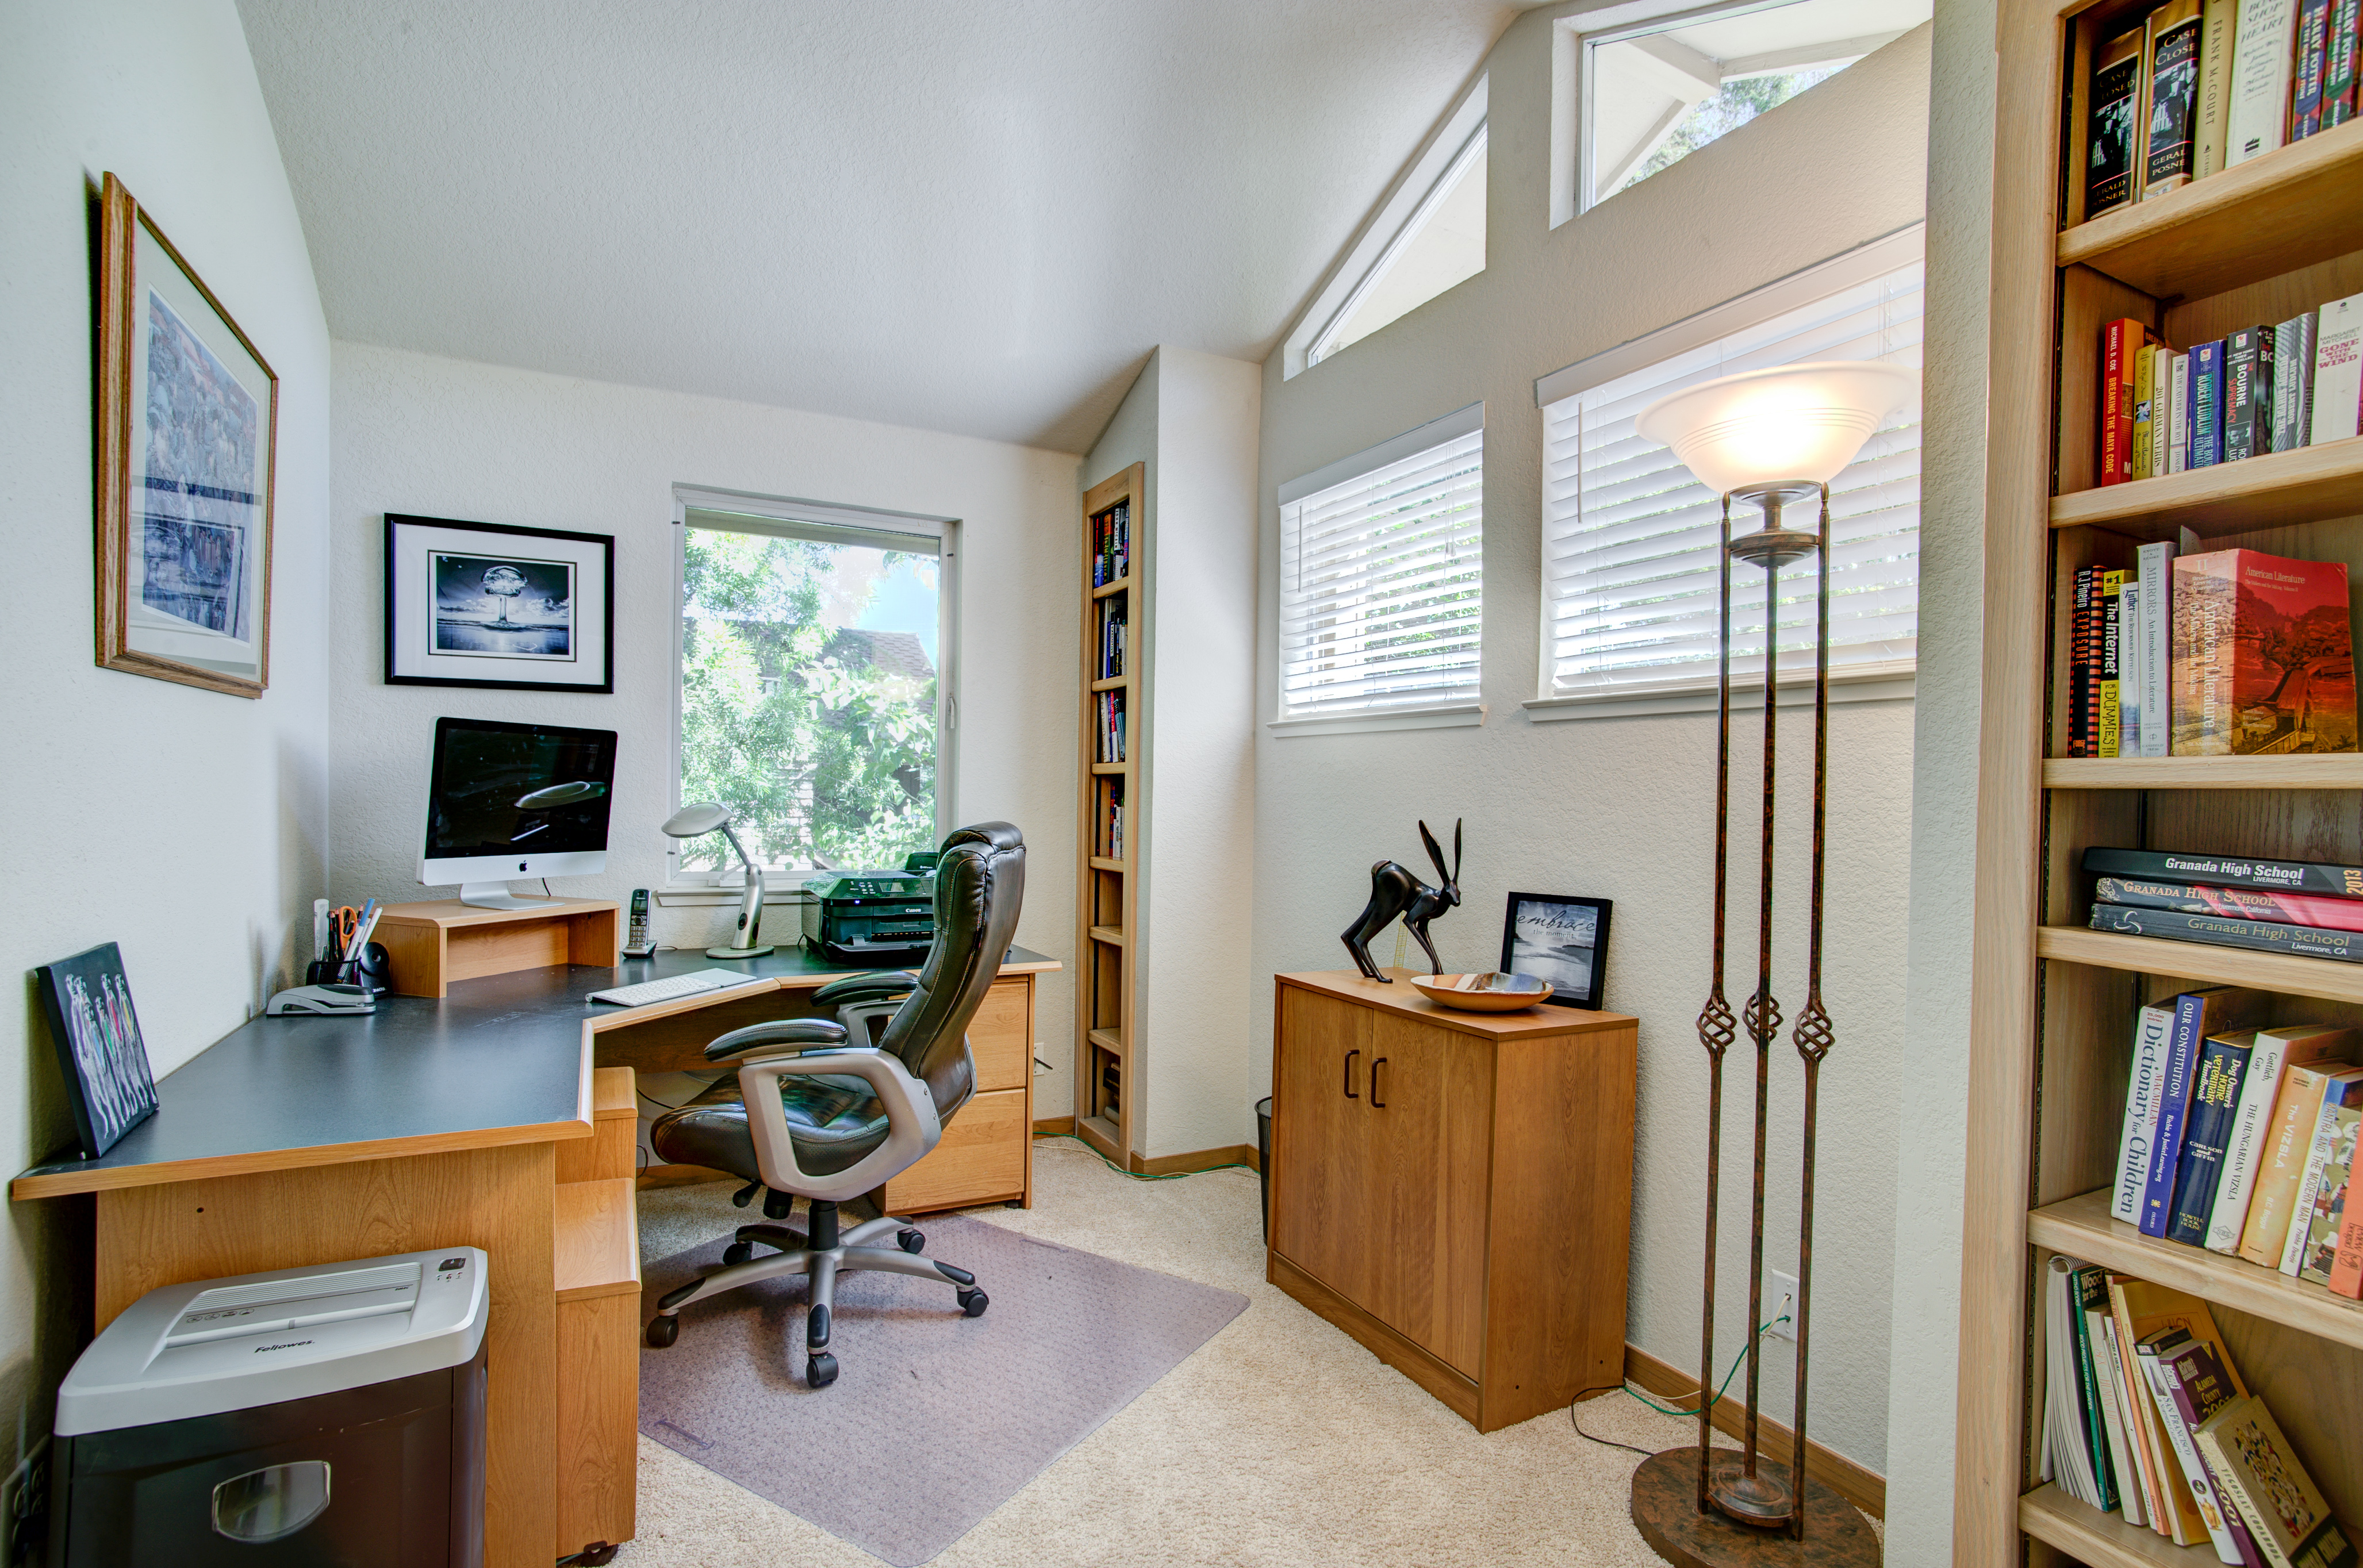 845_Kingsbury_Dr_Livermore-020